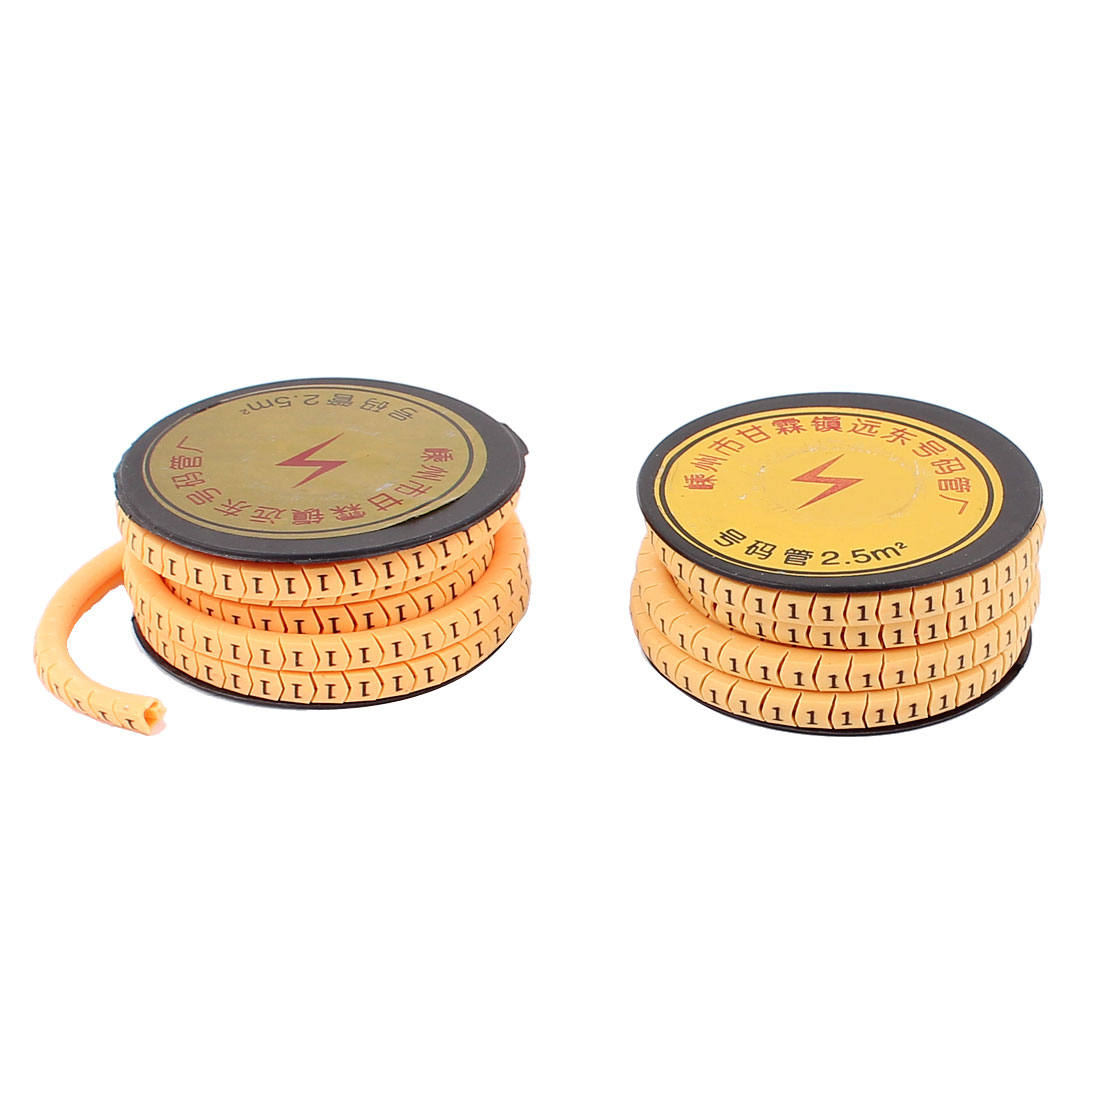 2pcs Flexible Yellow PVC Arabic Numerals 1 Printed Cable Marker Tag Label Reel Roll for 2.5mm2 Wire